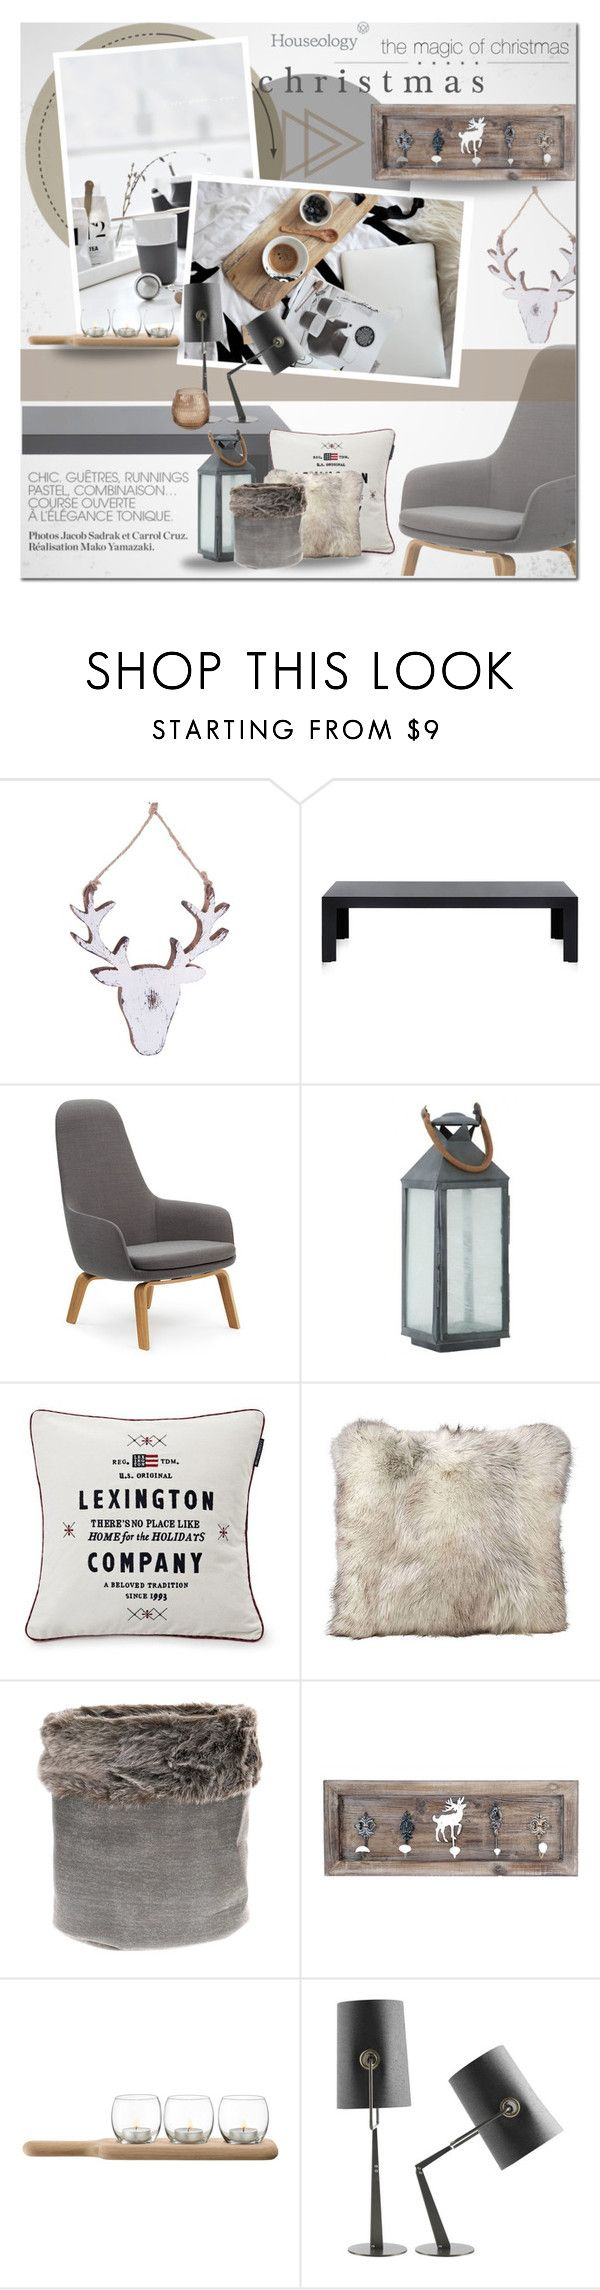 """The magic of Christmas"" by dian-lado ❤ liked on Polyvore featuring interior, interiors, interior design, home, home decor, interior decorating, Kartell, Normann Copenhagen, Eva Solo and Eichholtz"